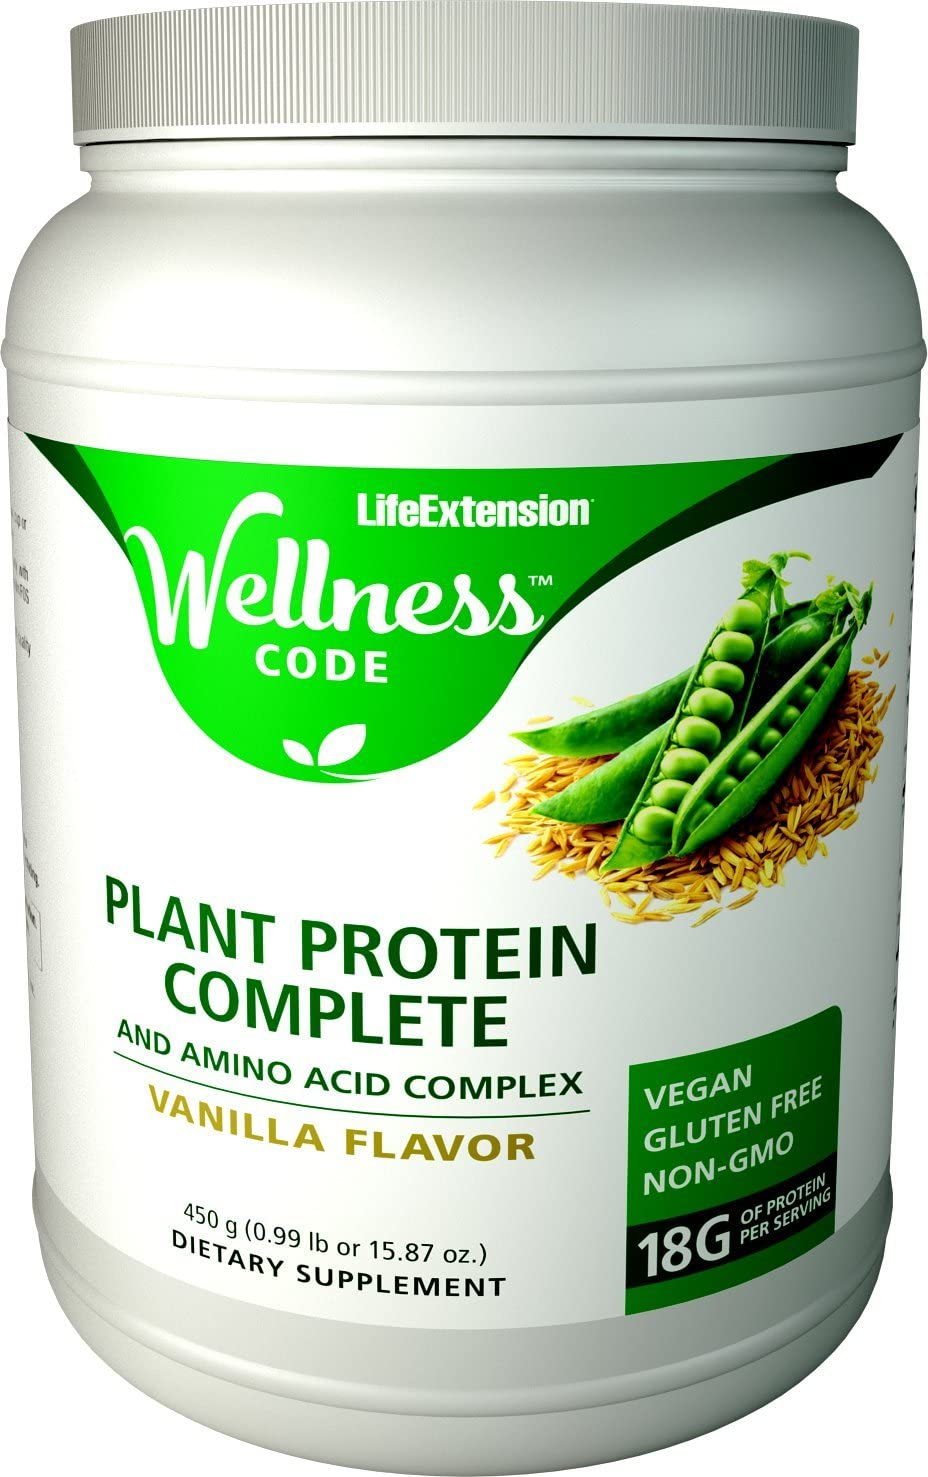 Life Extension Plant Protein Complete and Amino Acid Complex, Vanilla Flavor, 450 Grams 0.99 pounds or 15.87 Ounces